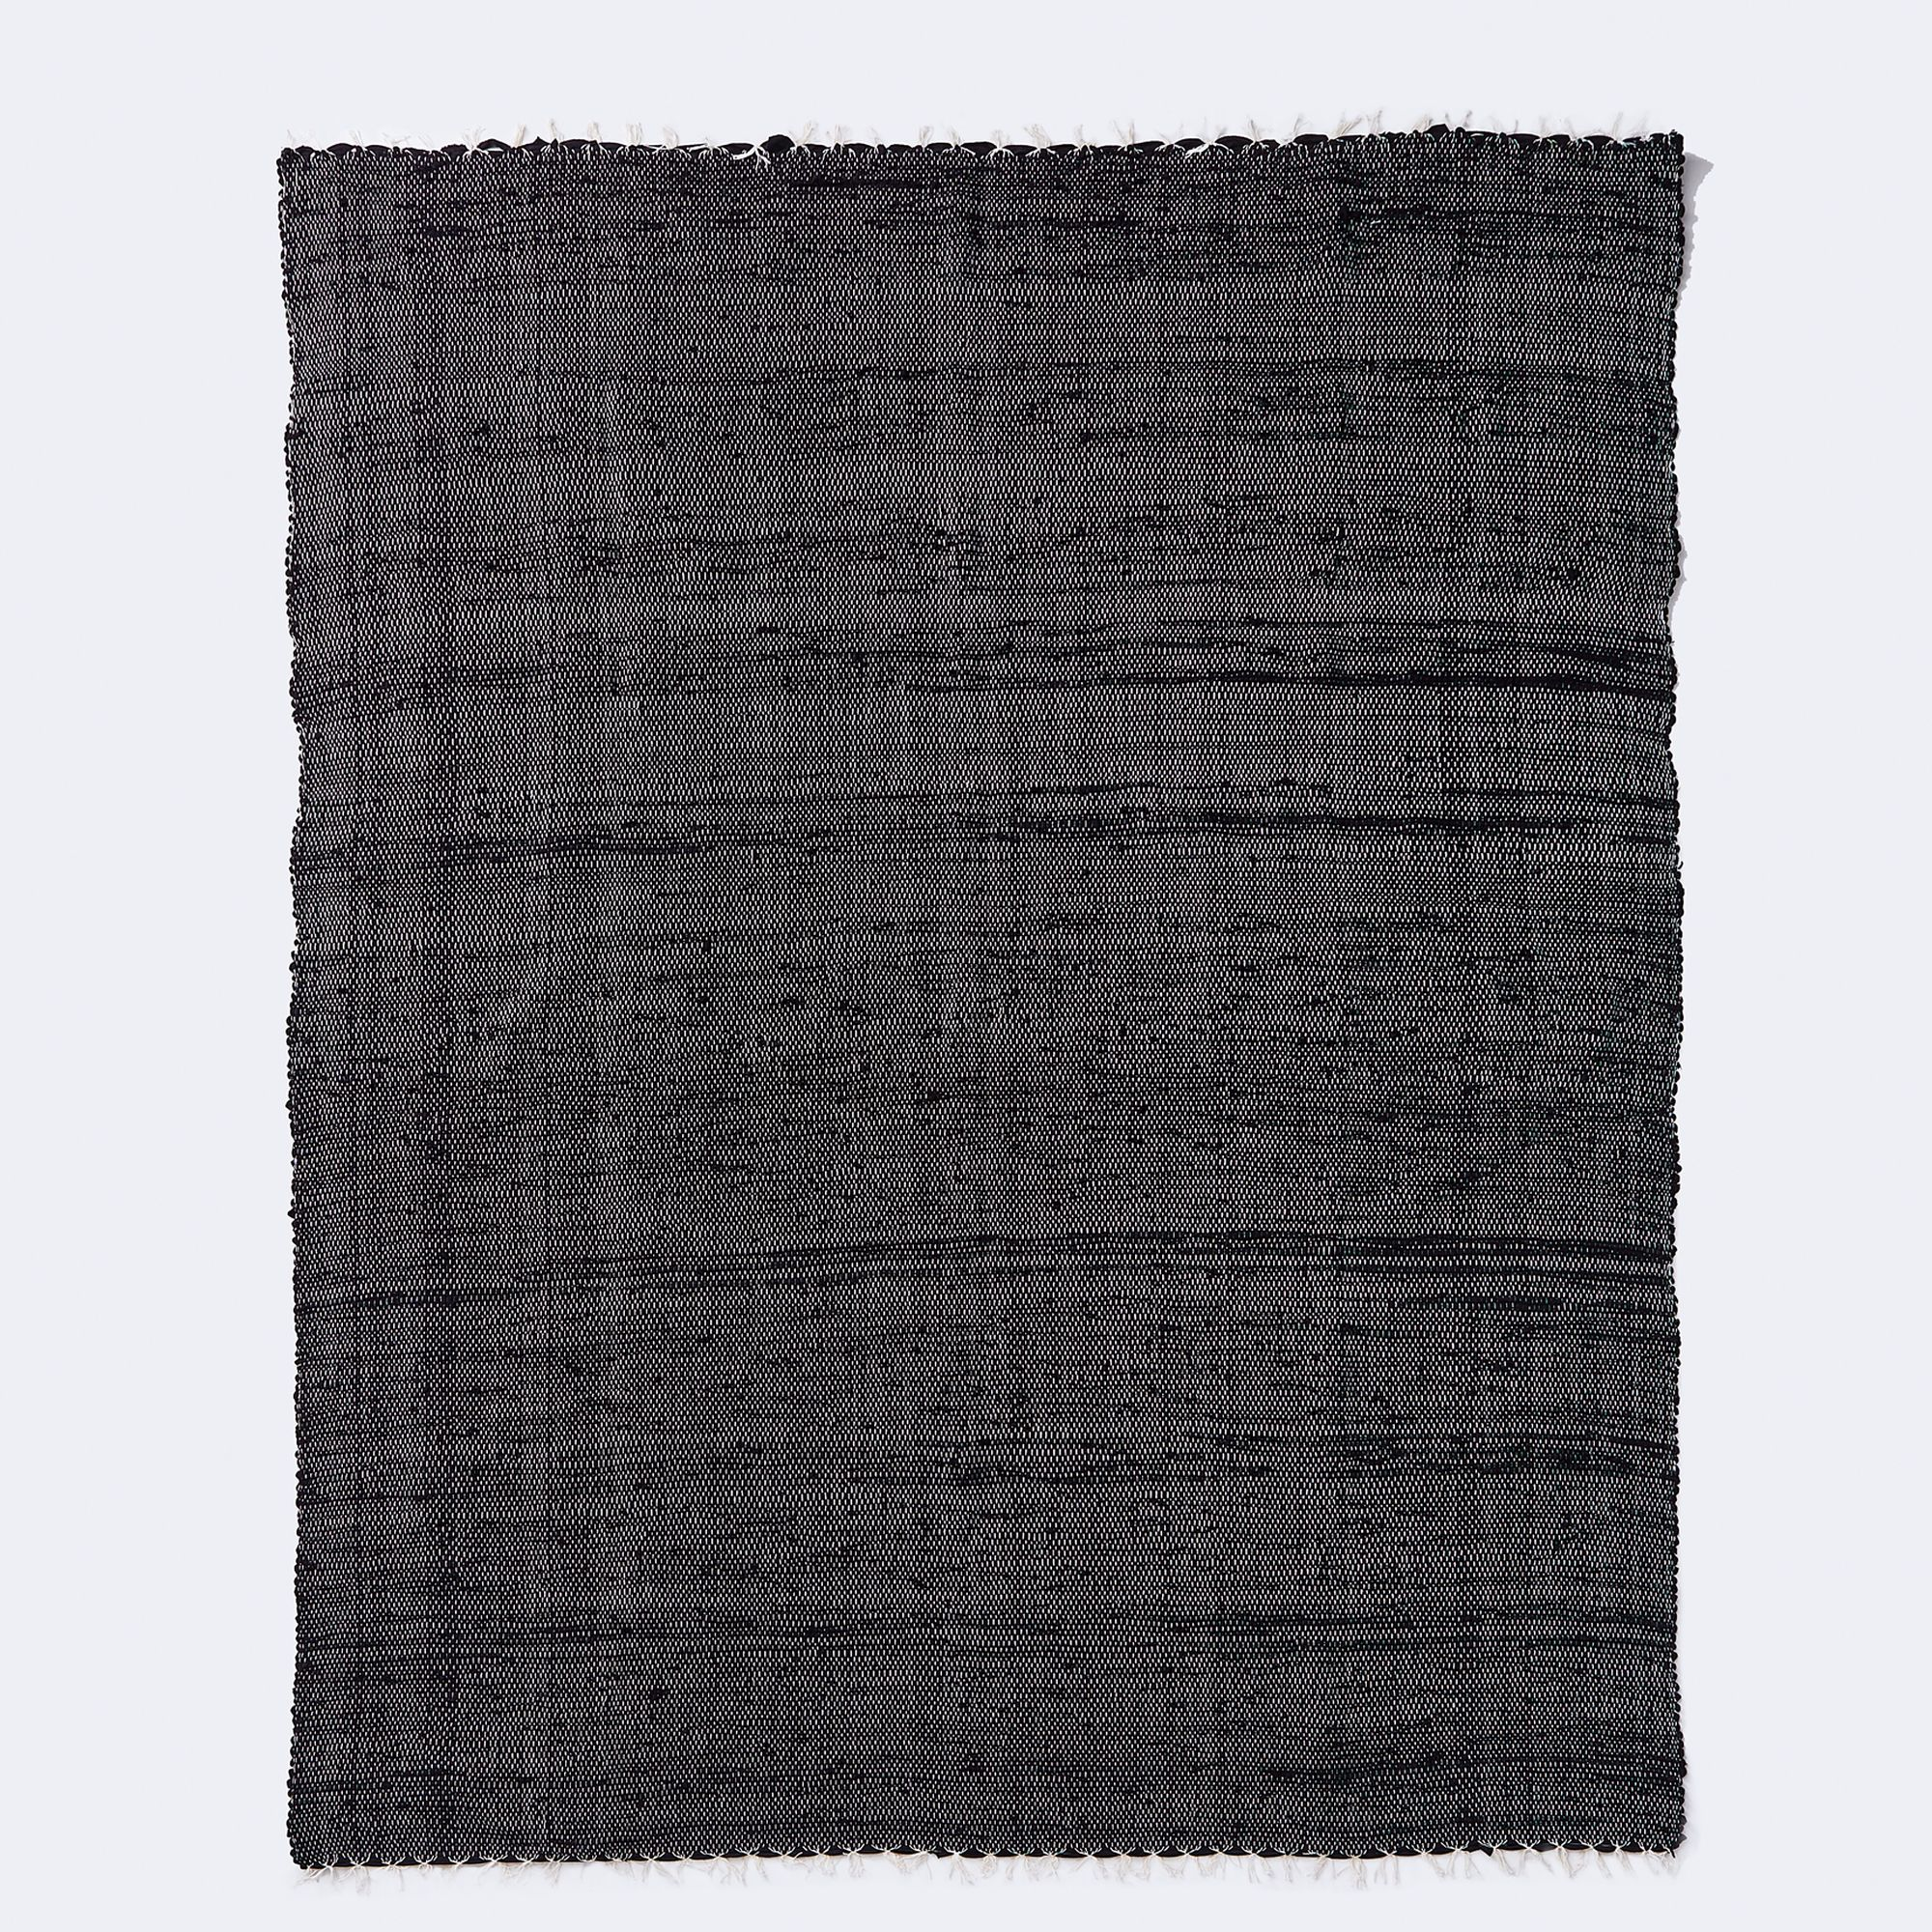 Handmade Washable Recycled Cotton Rug